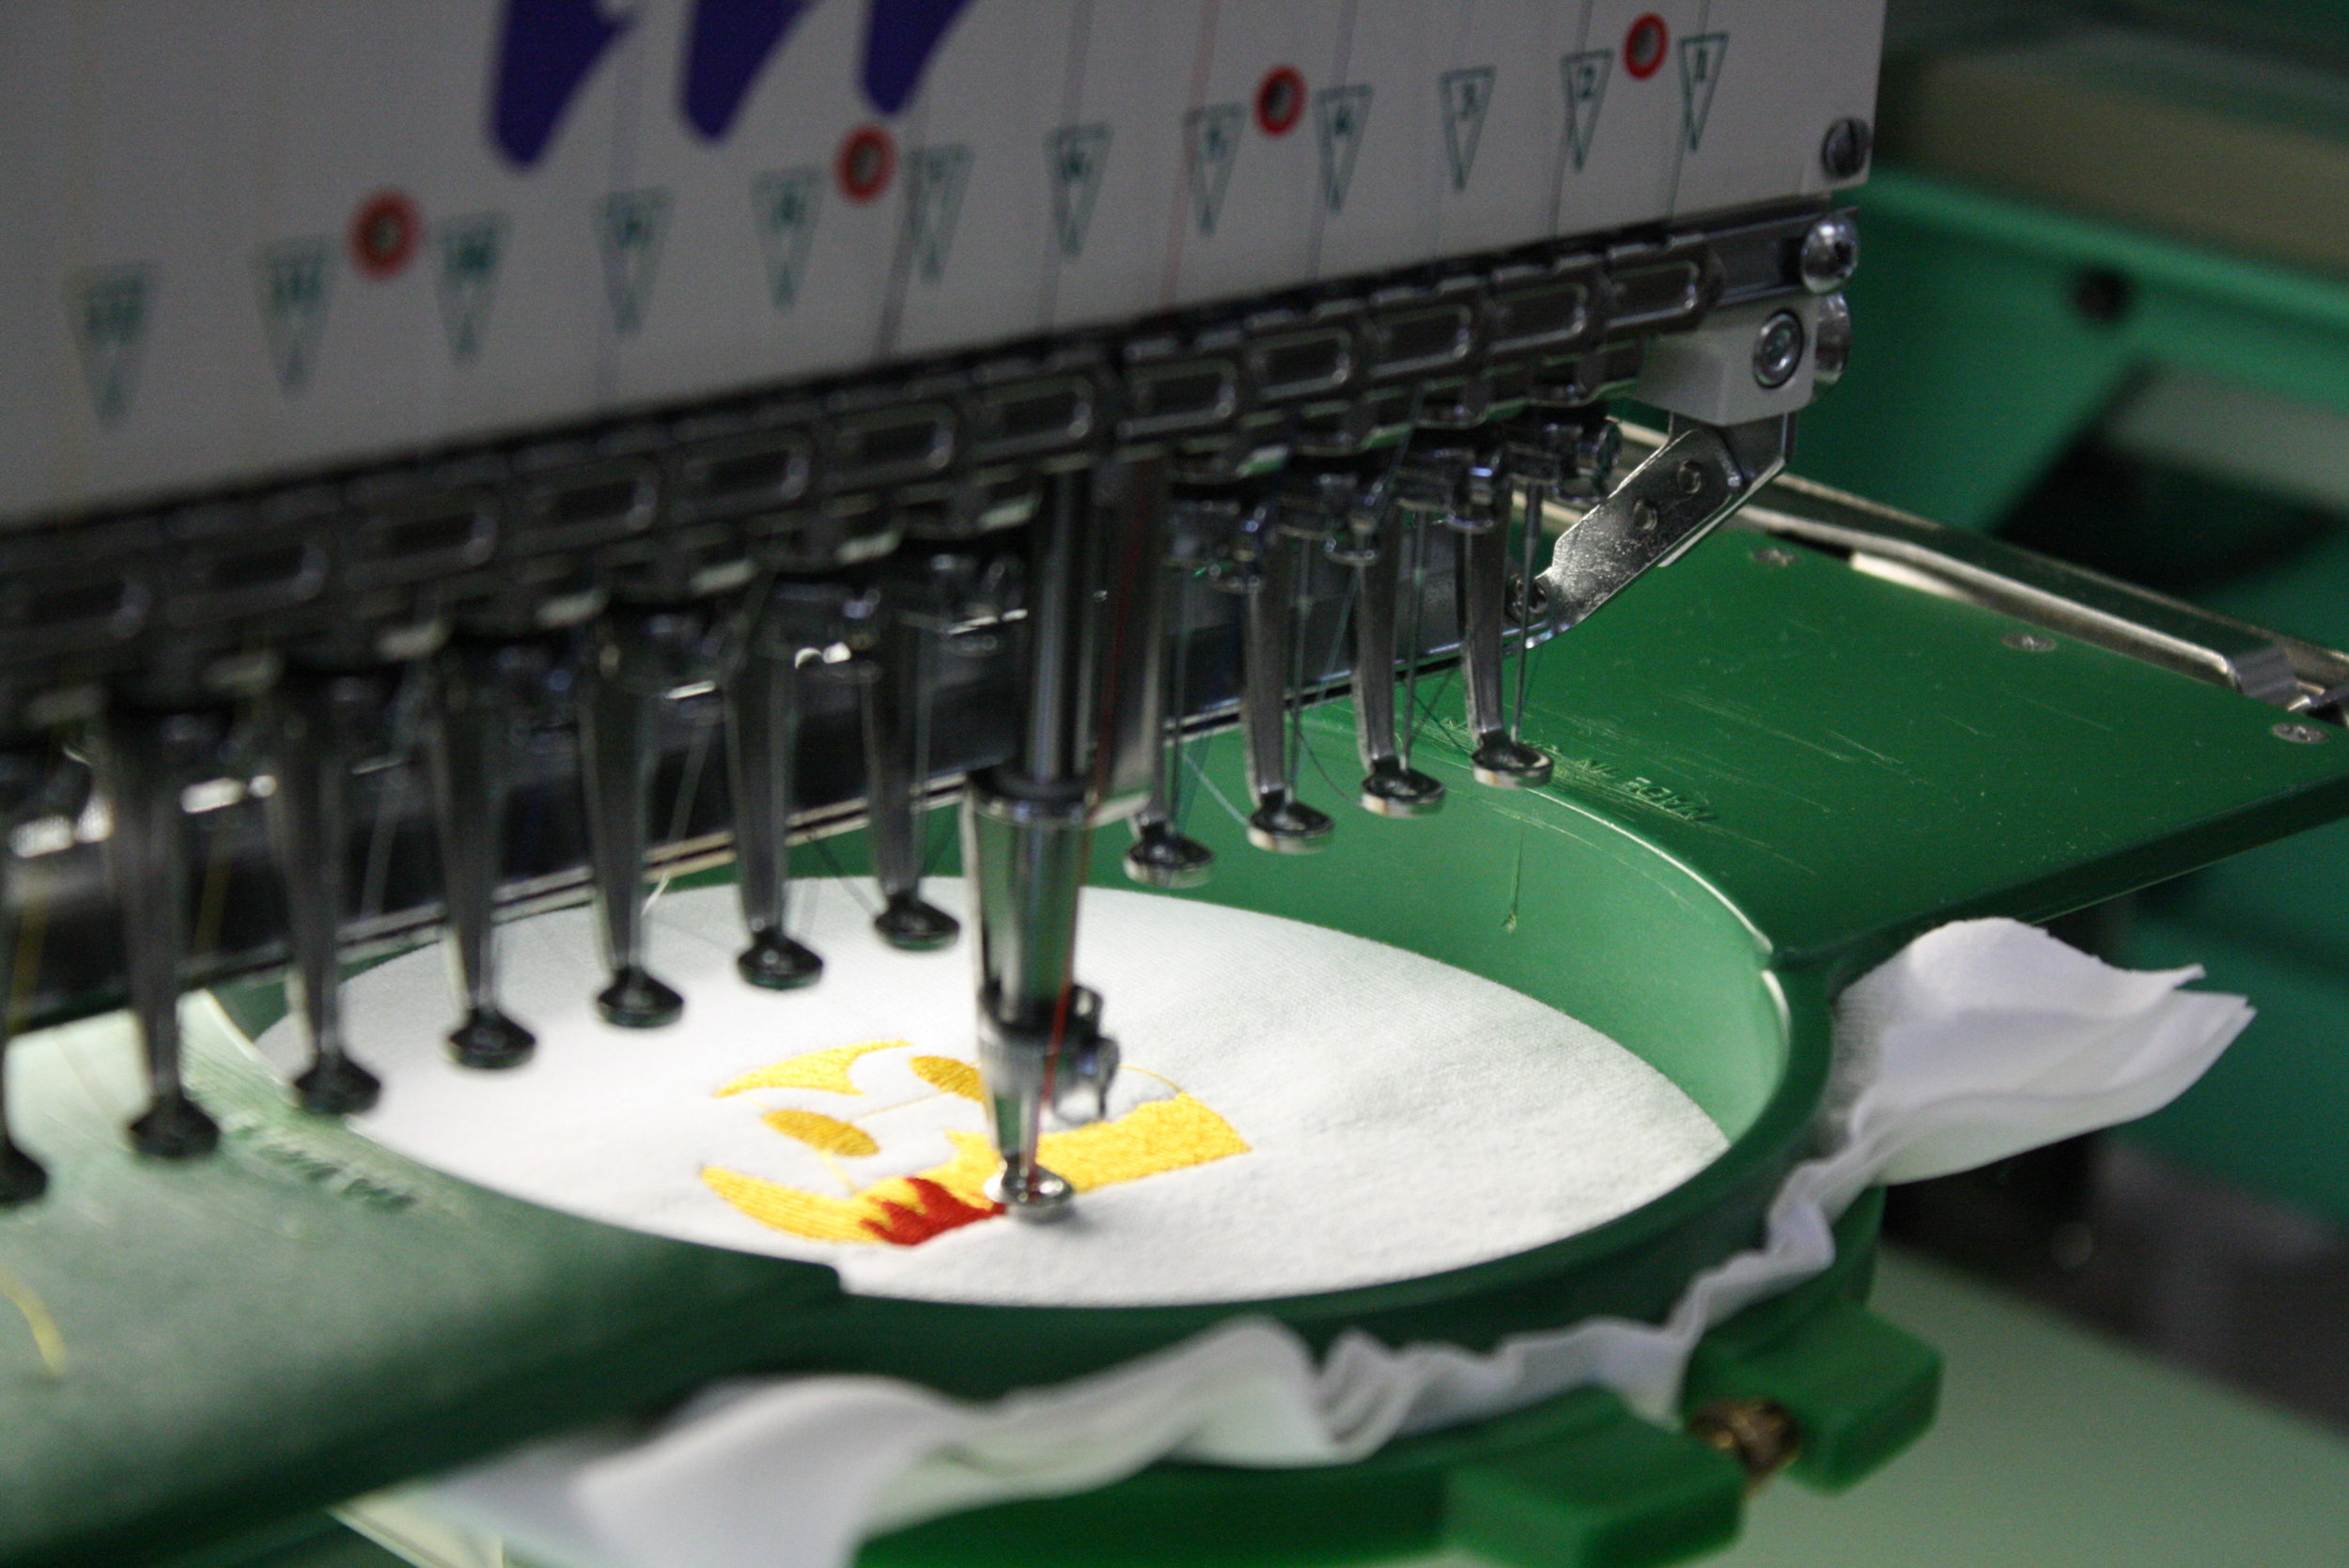 A Tajima embroidery machine sewing out a design.